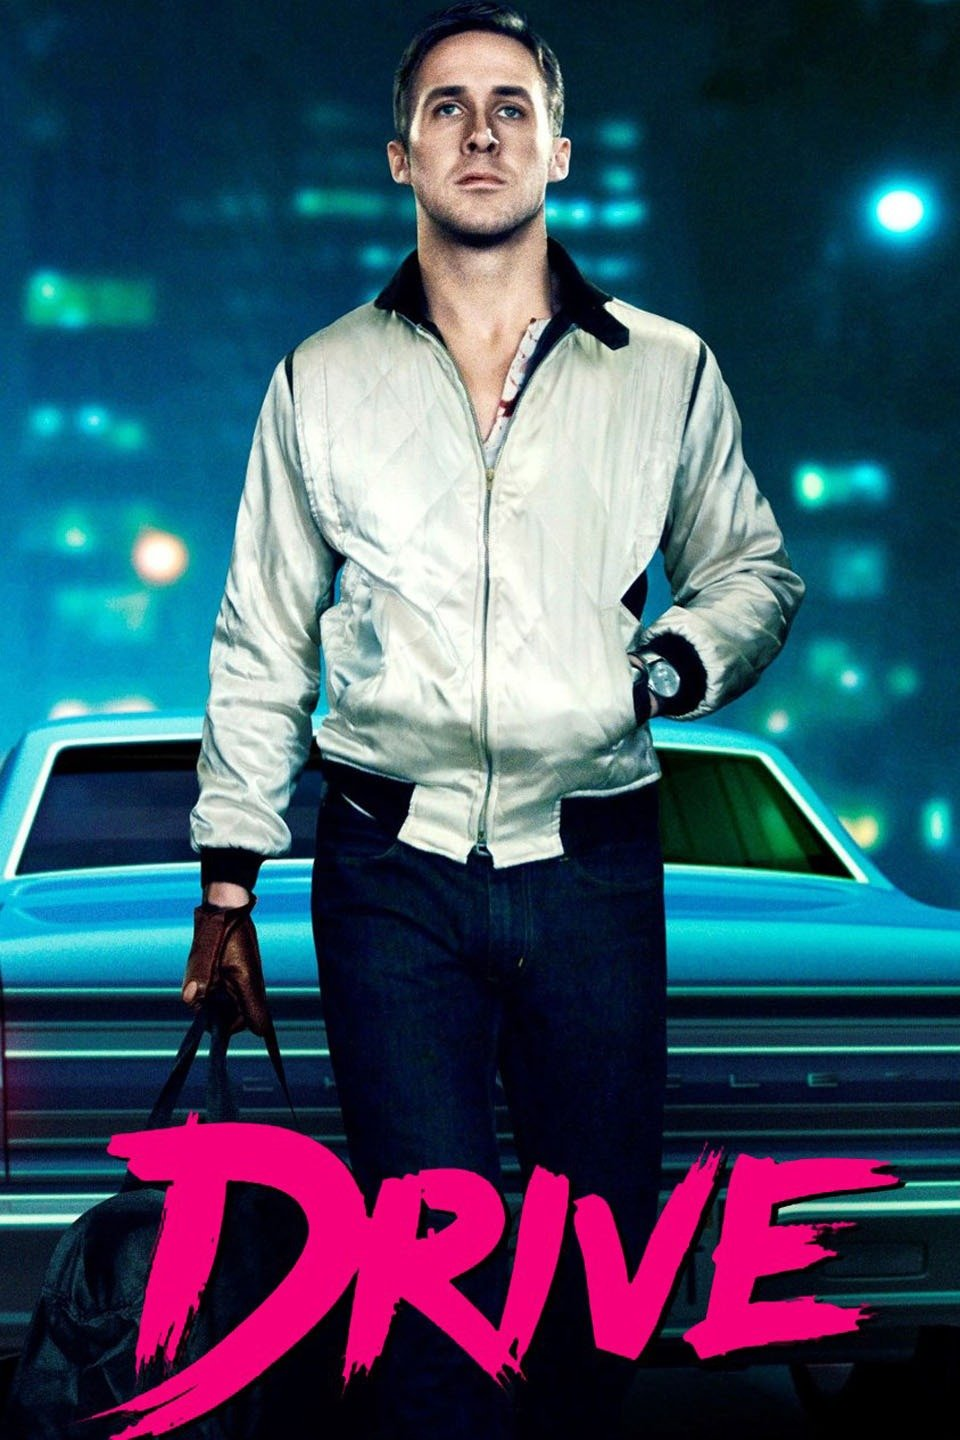 Image result for Drive (2011)